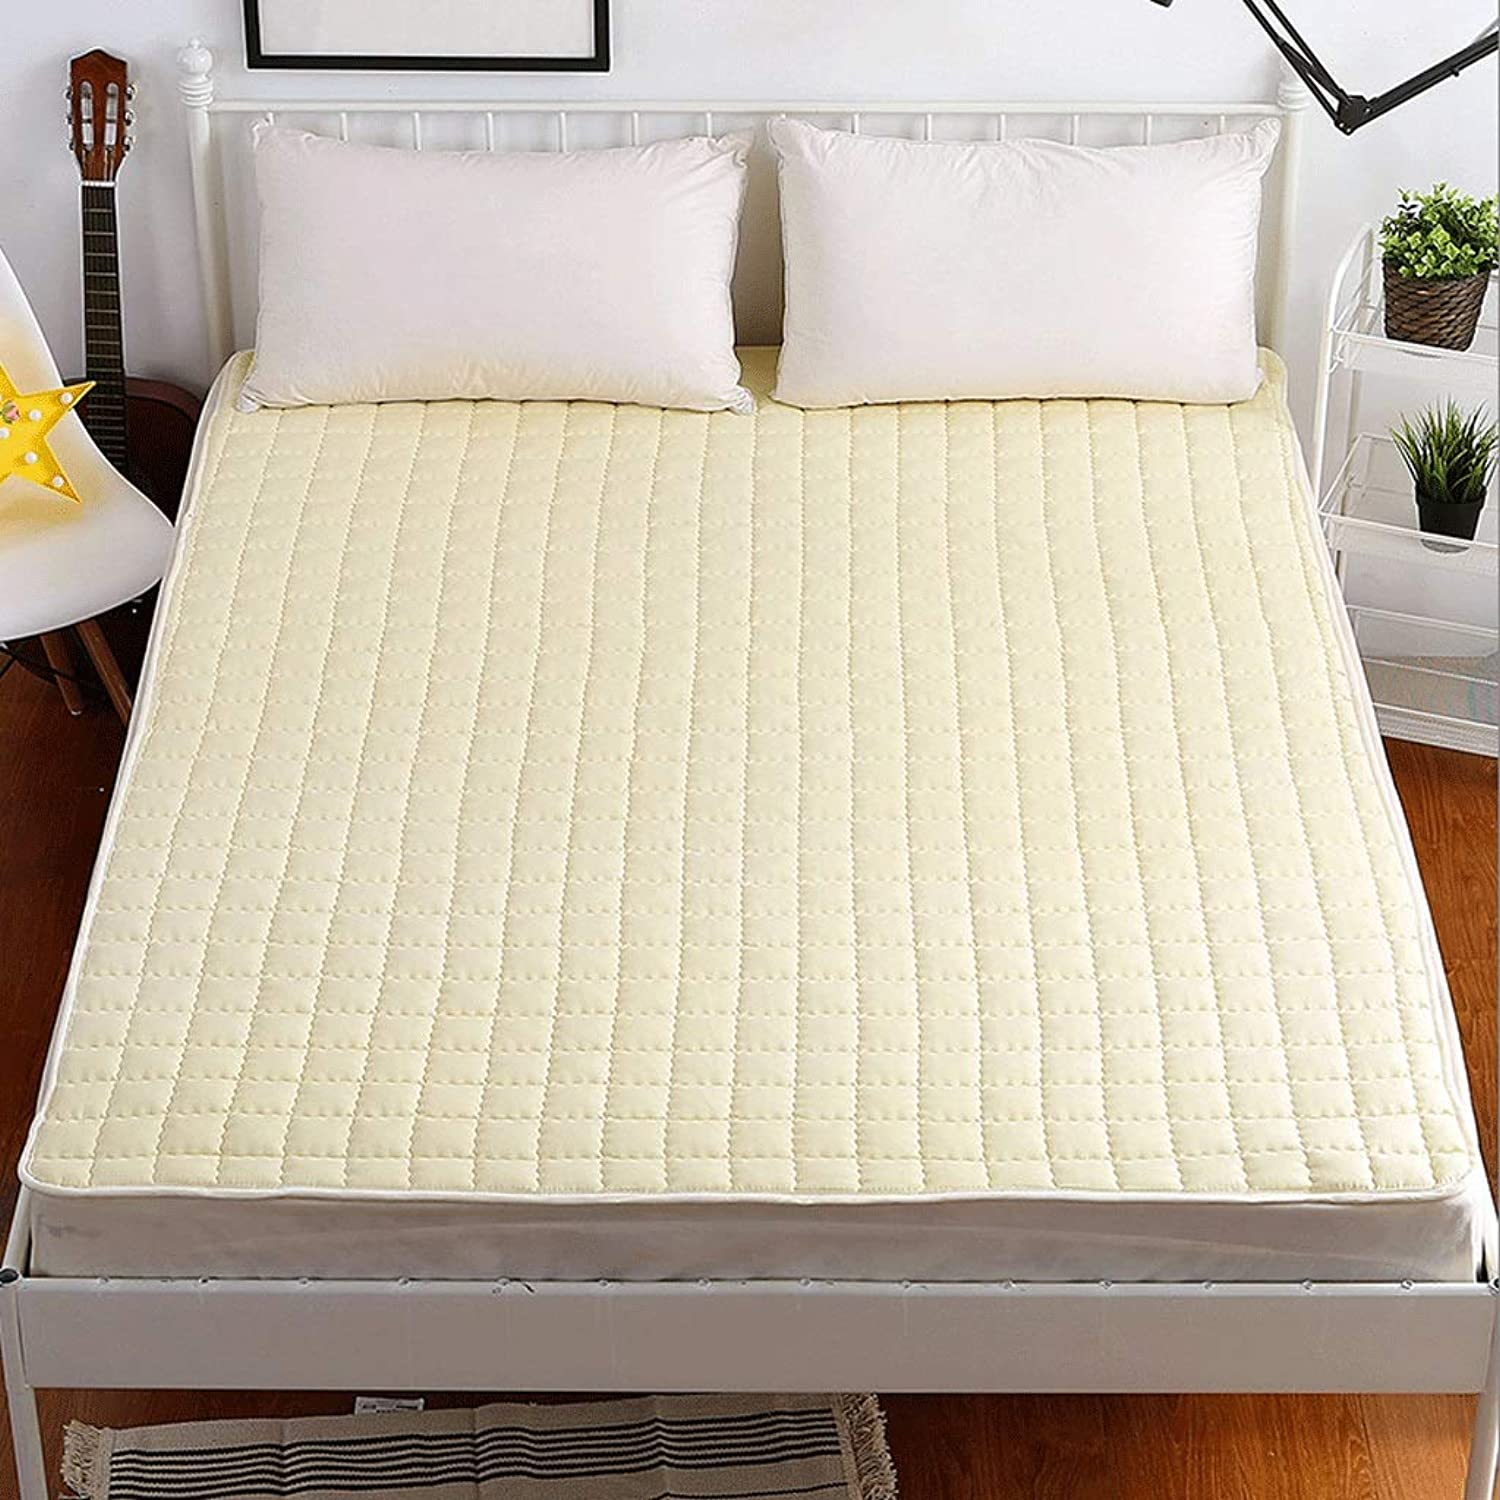 Foldable Mattress, Four Seasons Universal Bed Pad, High Resilience Cotton Fabric (color   Beige, Size   120CM)